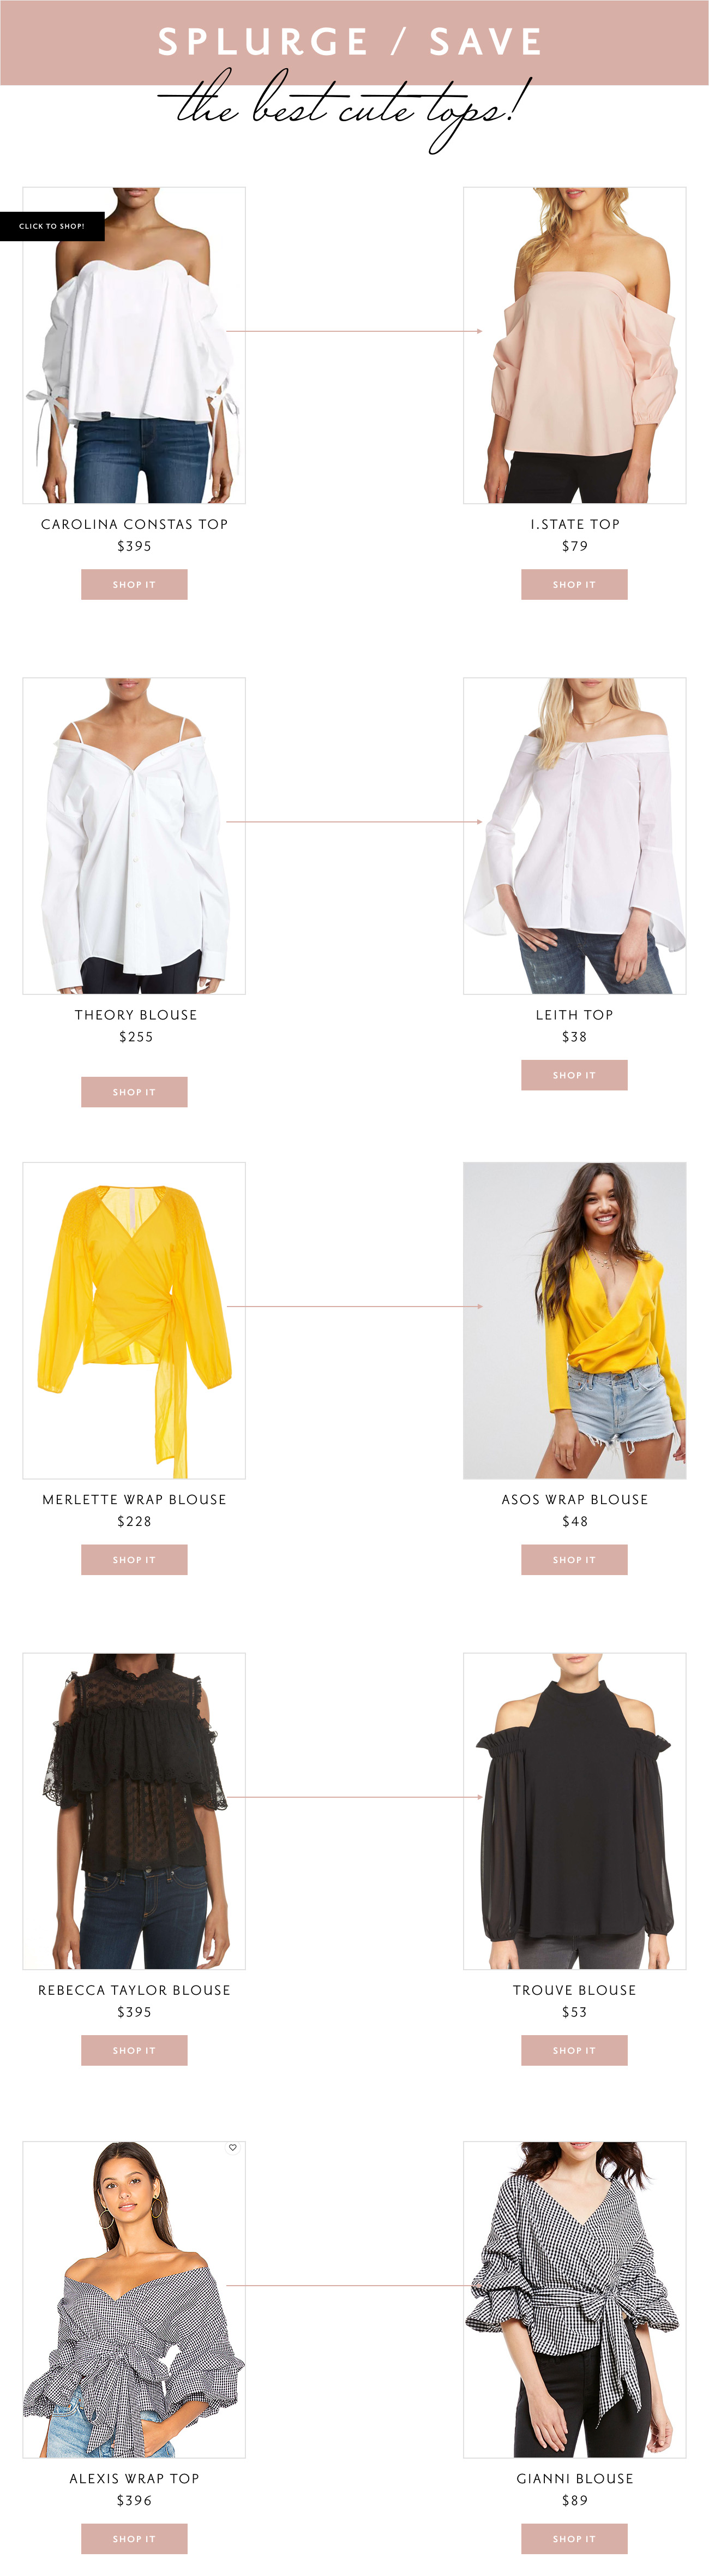 splurge vs. save: the best cute tops | the stripe blog